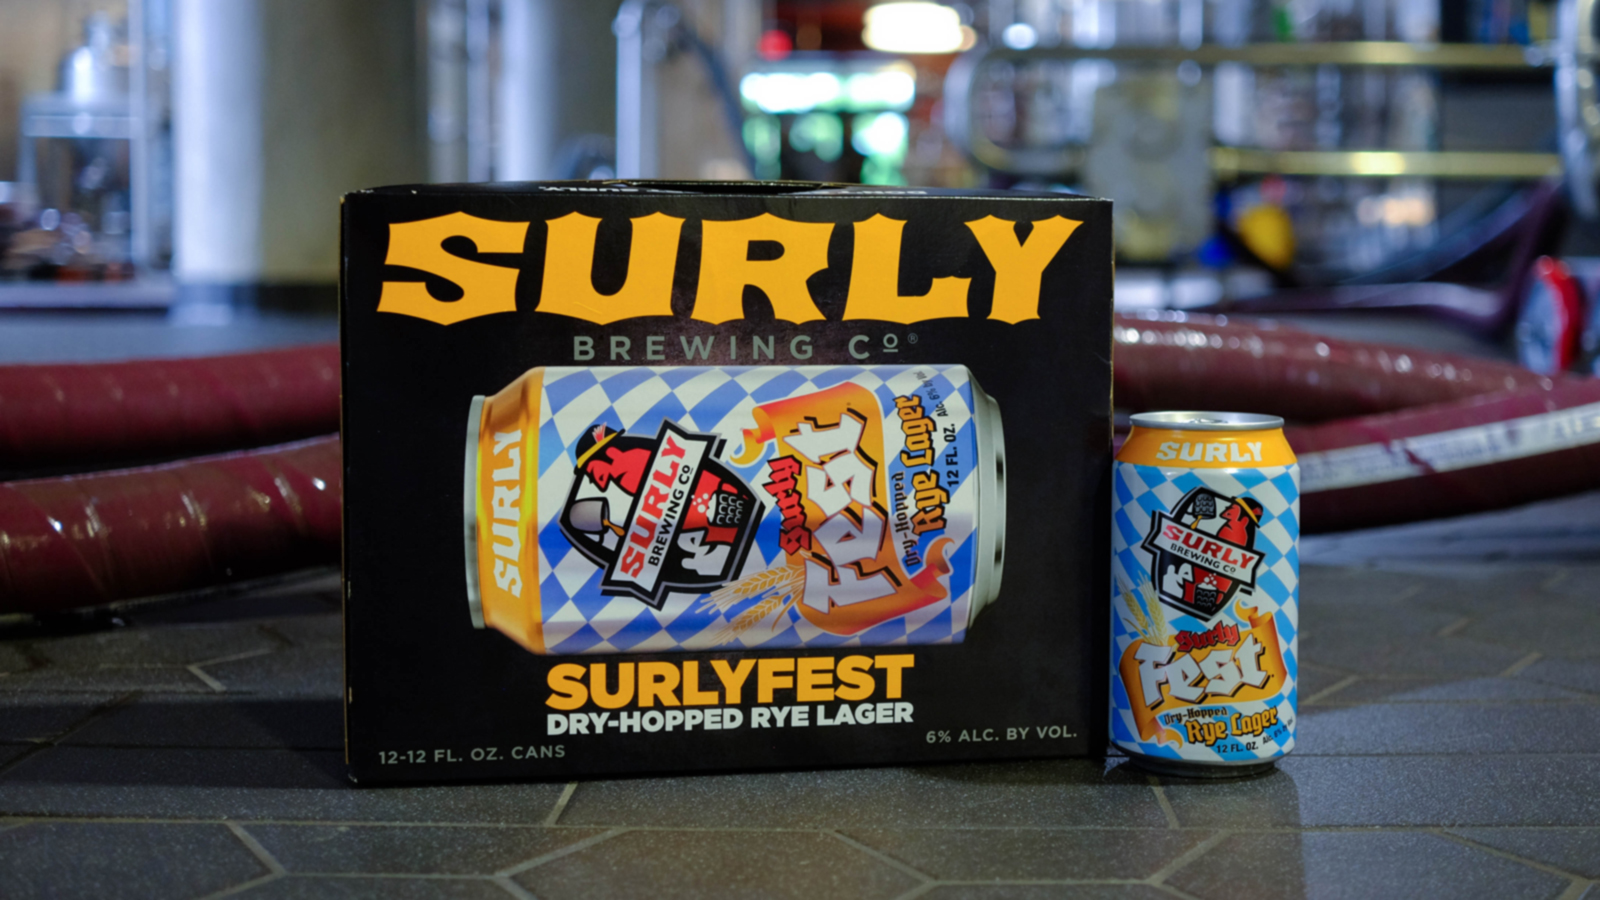 Surly SurlyFest (Minneapolis, MN)